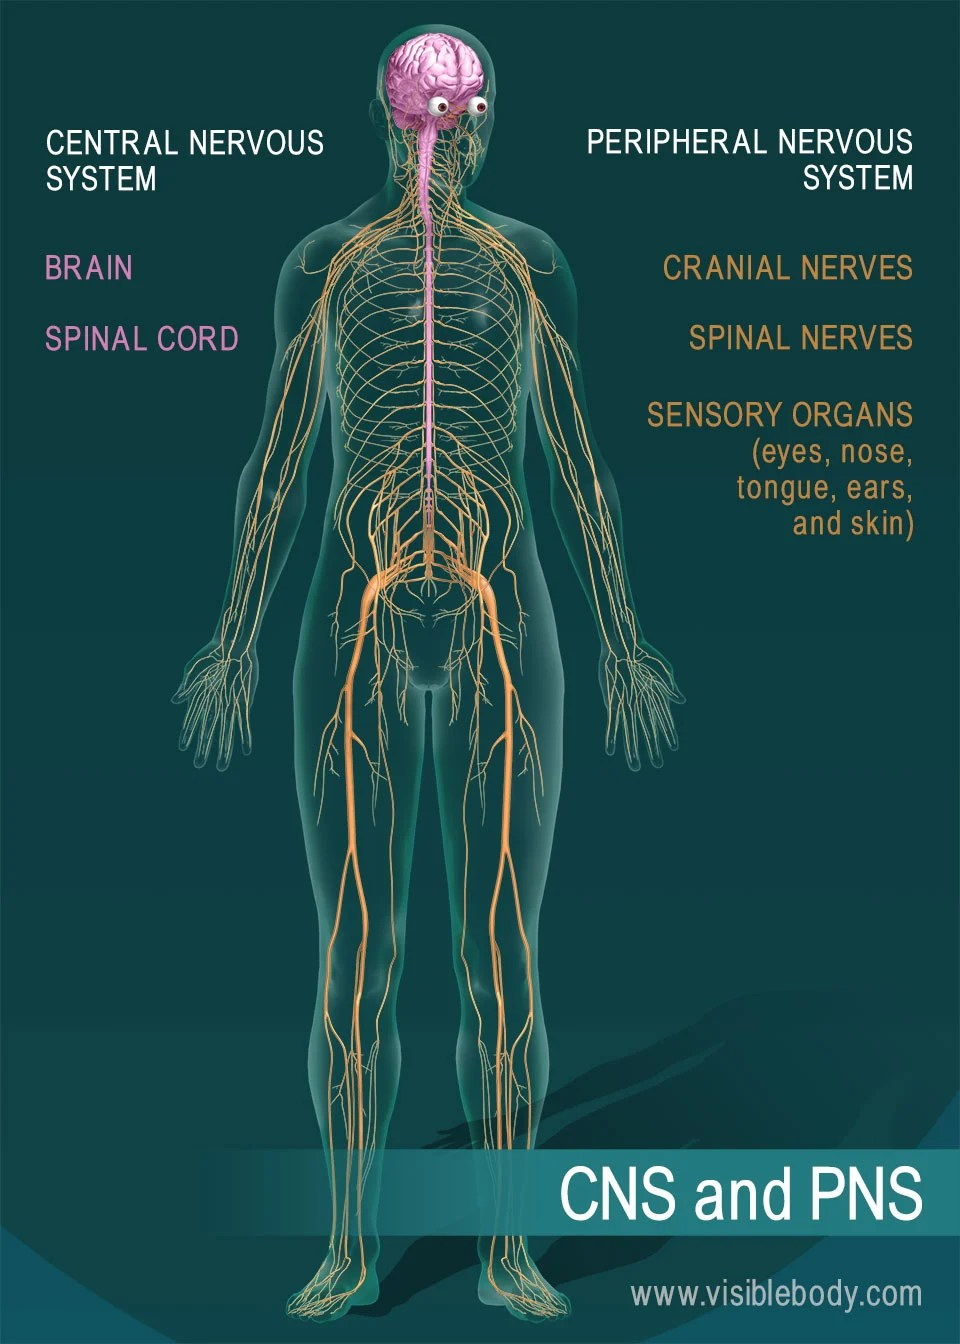 hight resolution of the brain and spinal cord are the central nervous system nerves and sensory organs make up the peripheral nervous system